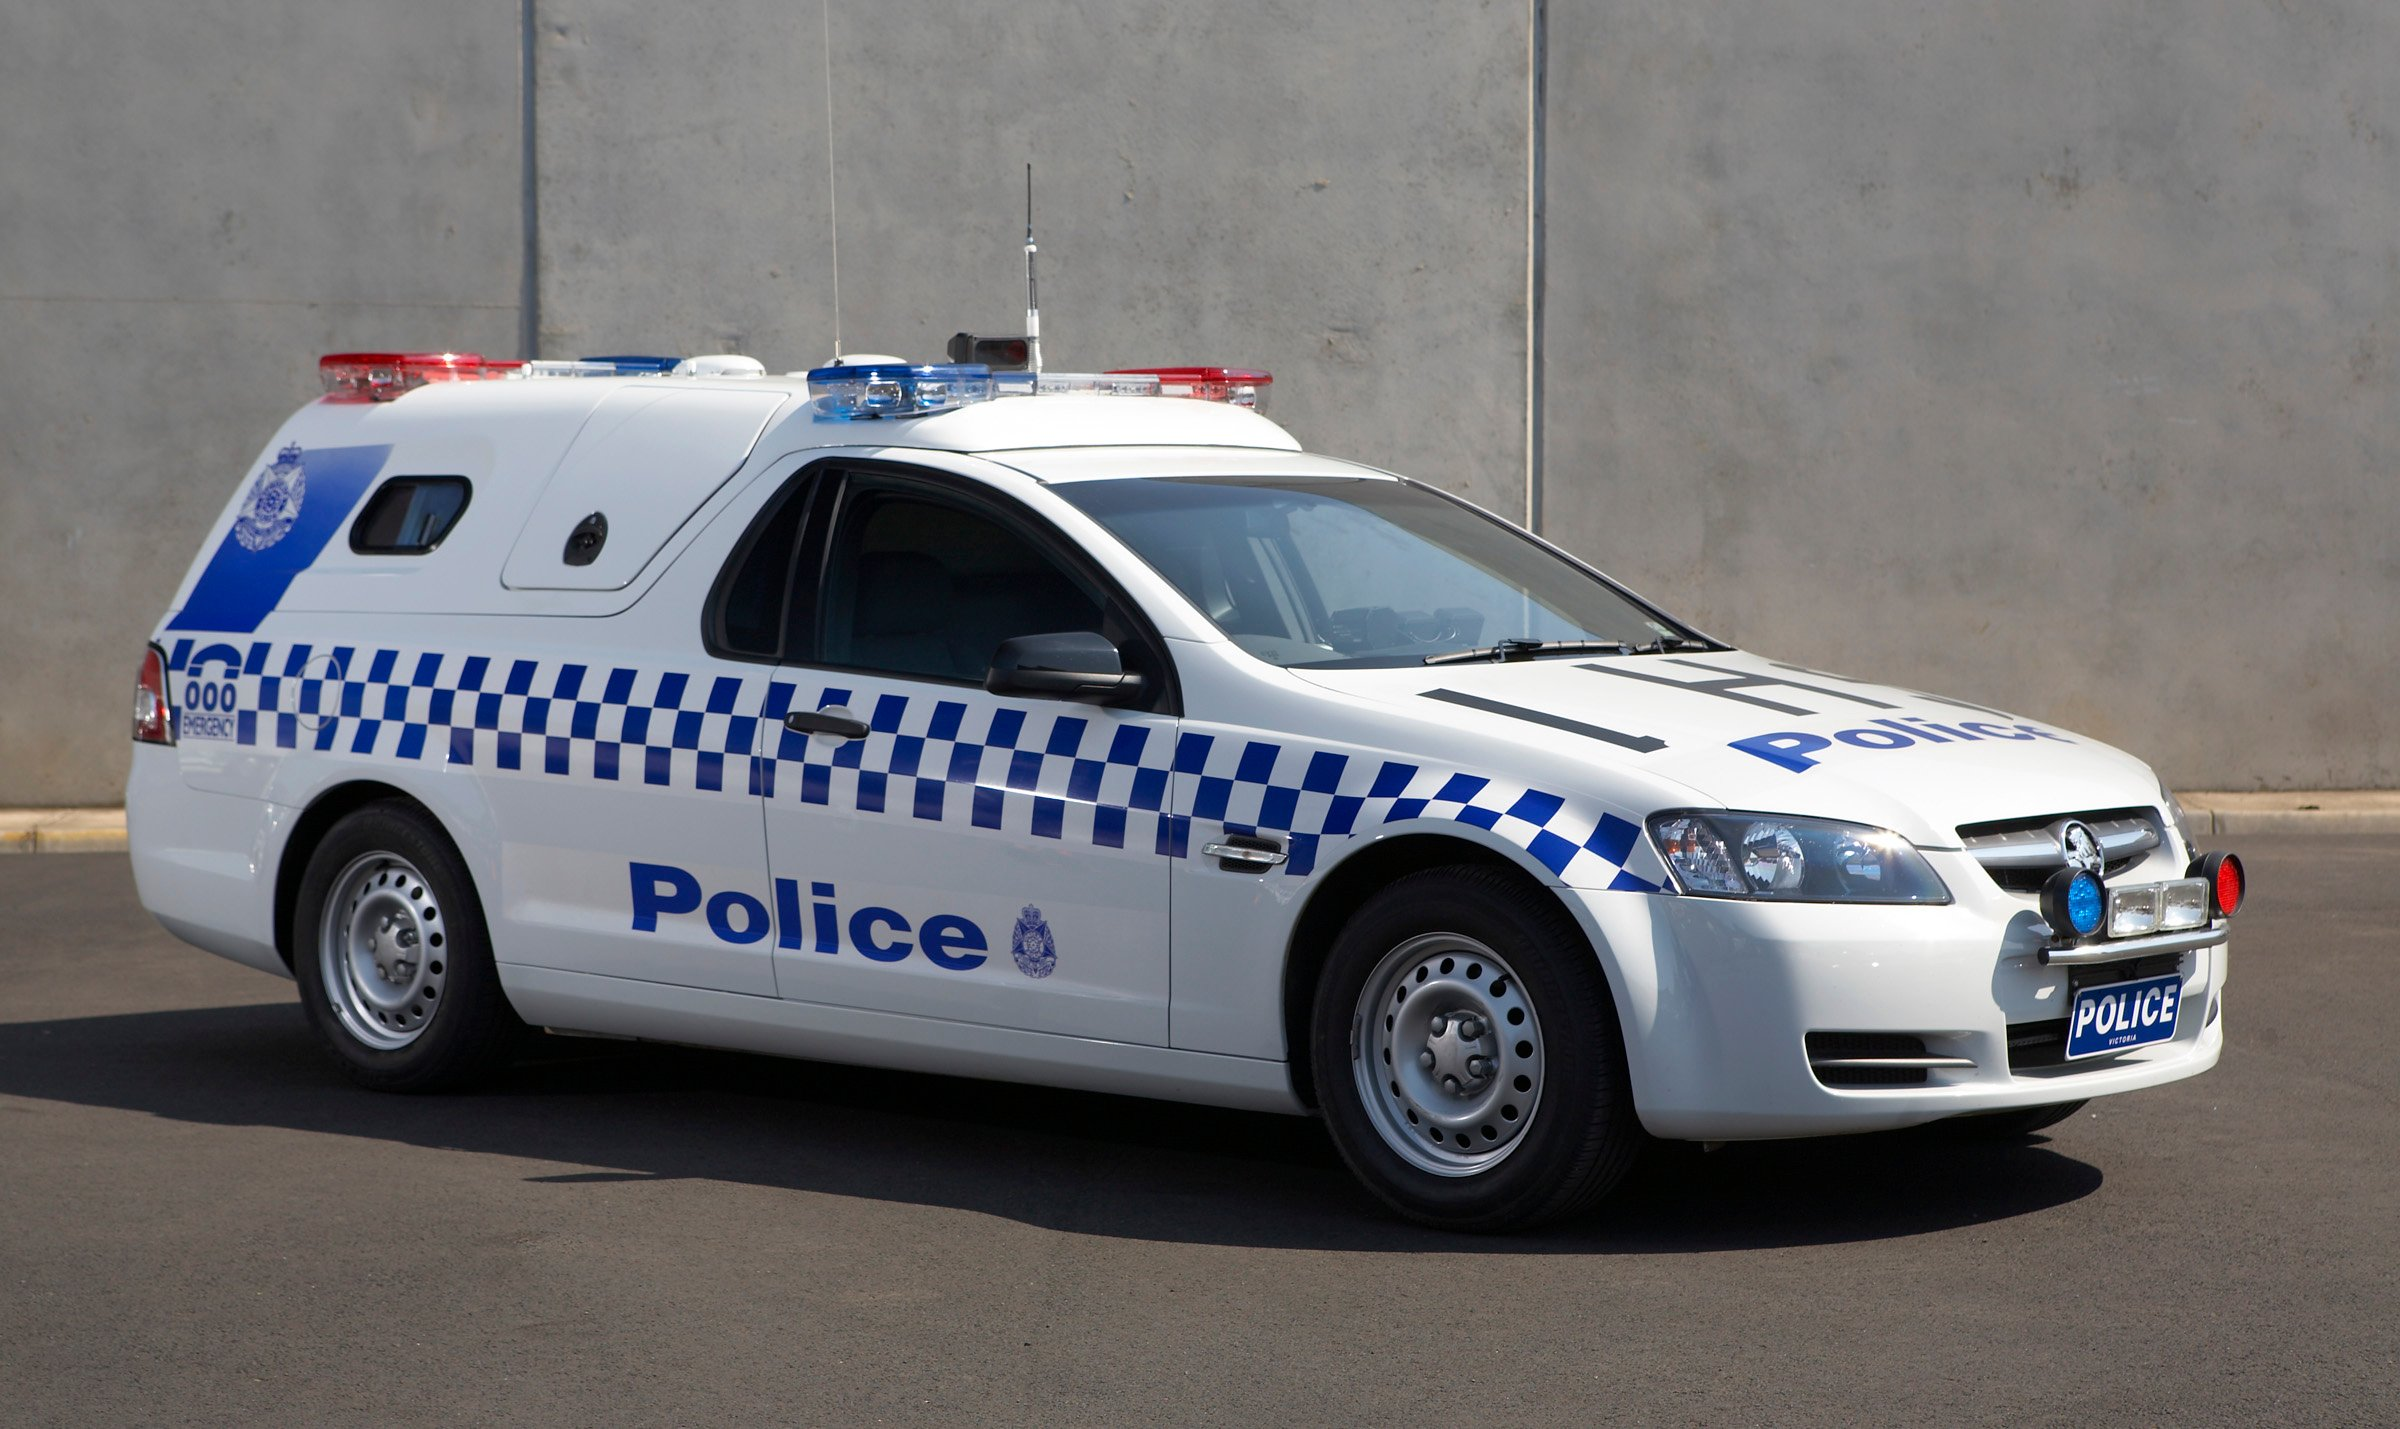 Holden launches new Divisional Van for Victoria Police - Photos (1 of 5)